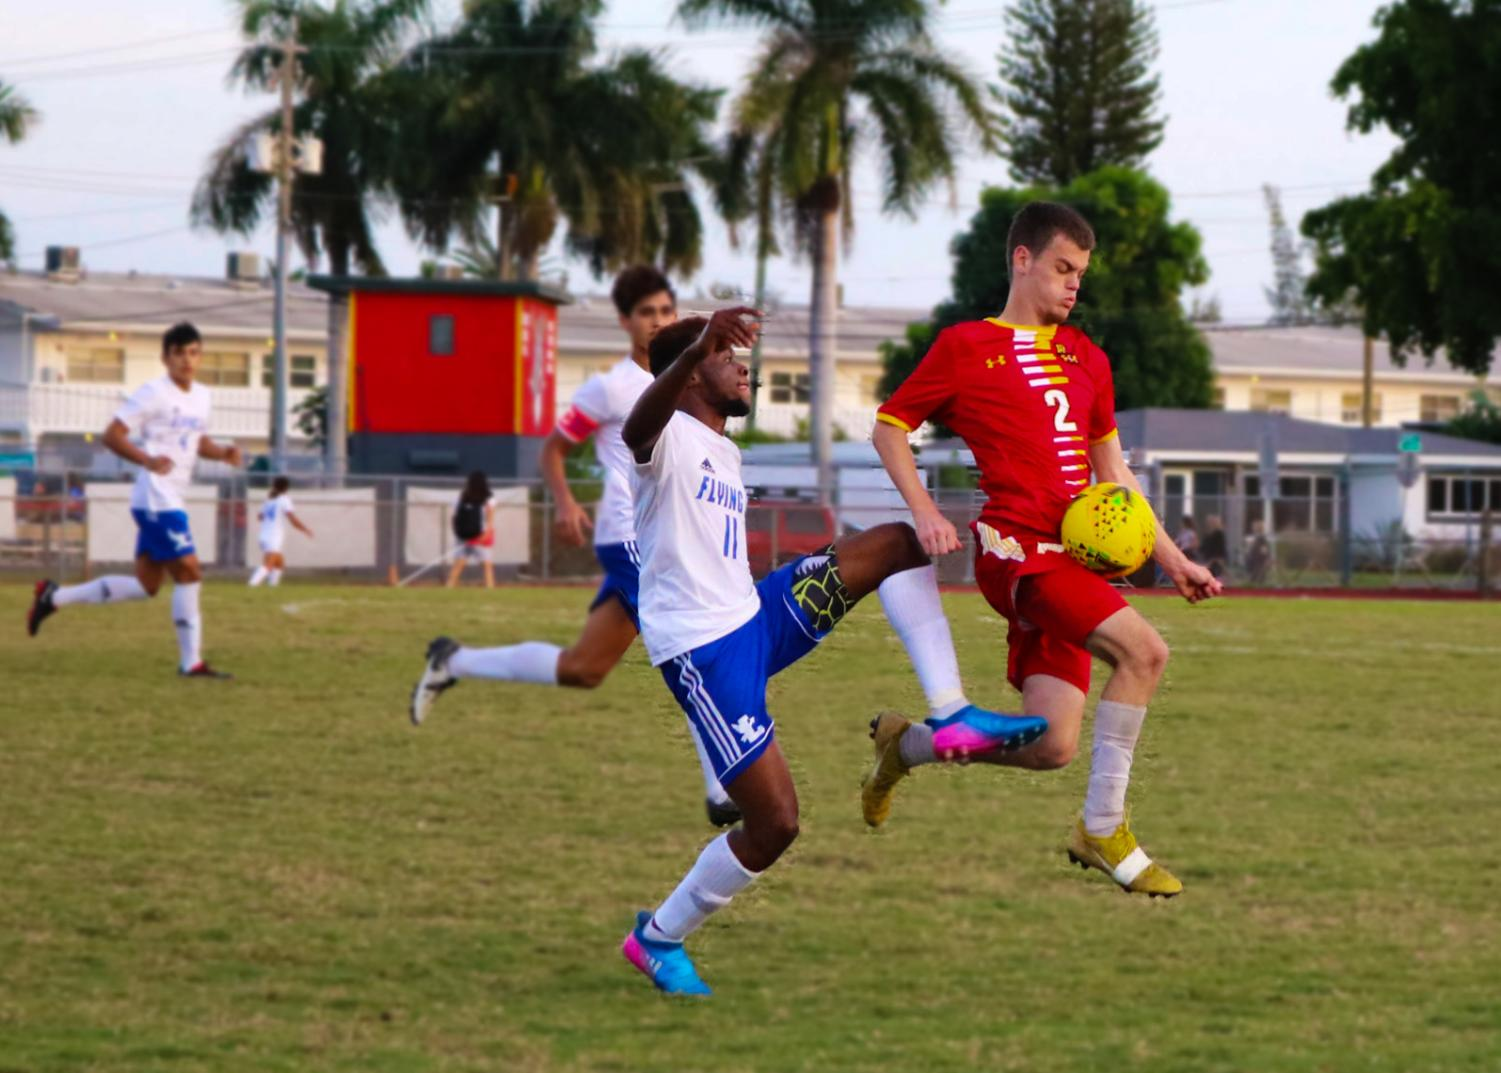 SBHS Bulldog Matthew Randall blocks the ball from an L player, in the first game of their season. SBHS boy's soccer team lost 1-0 against Fort Lauderdale High School.